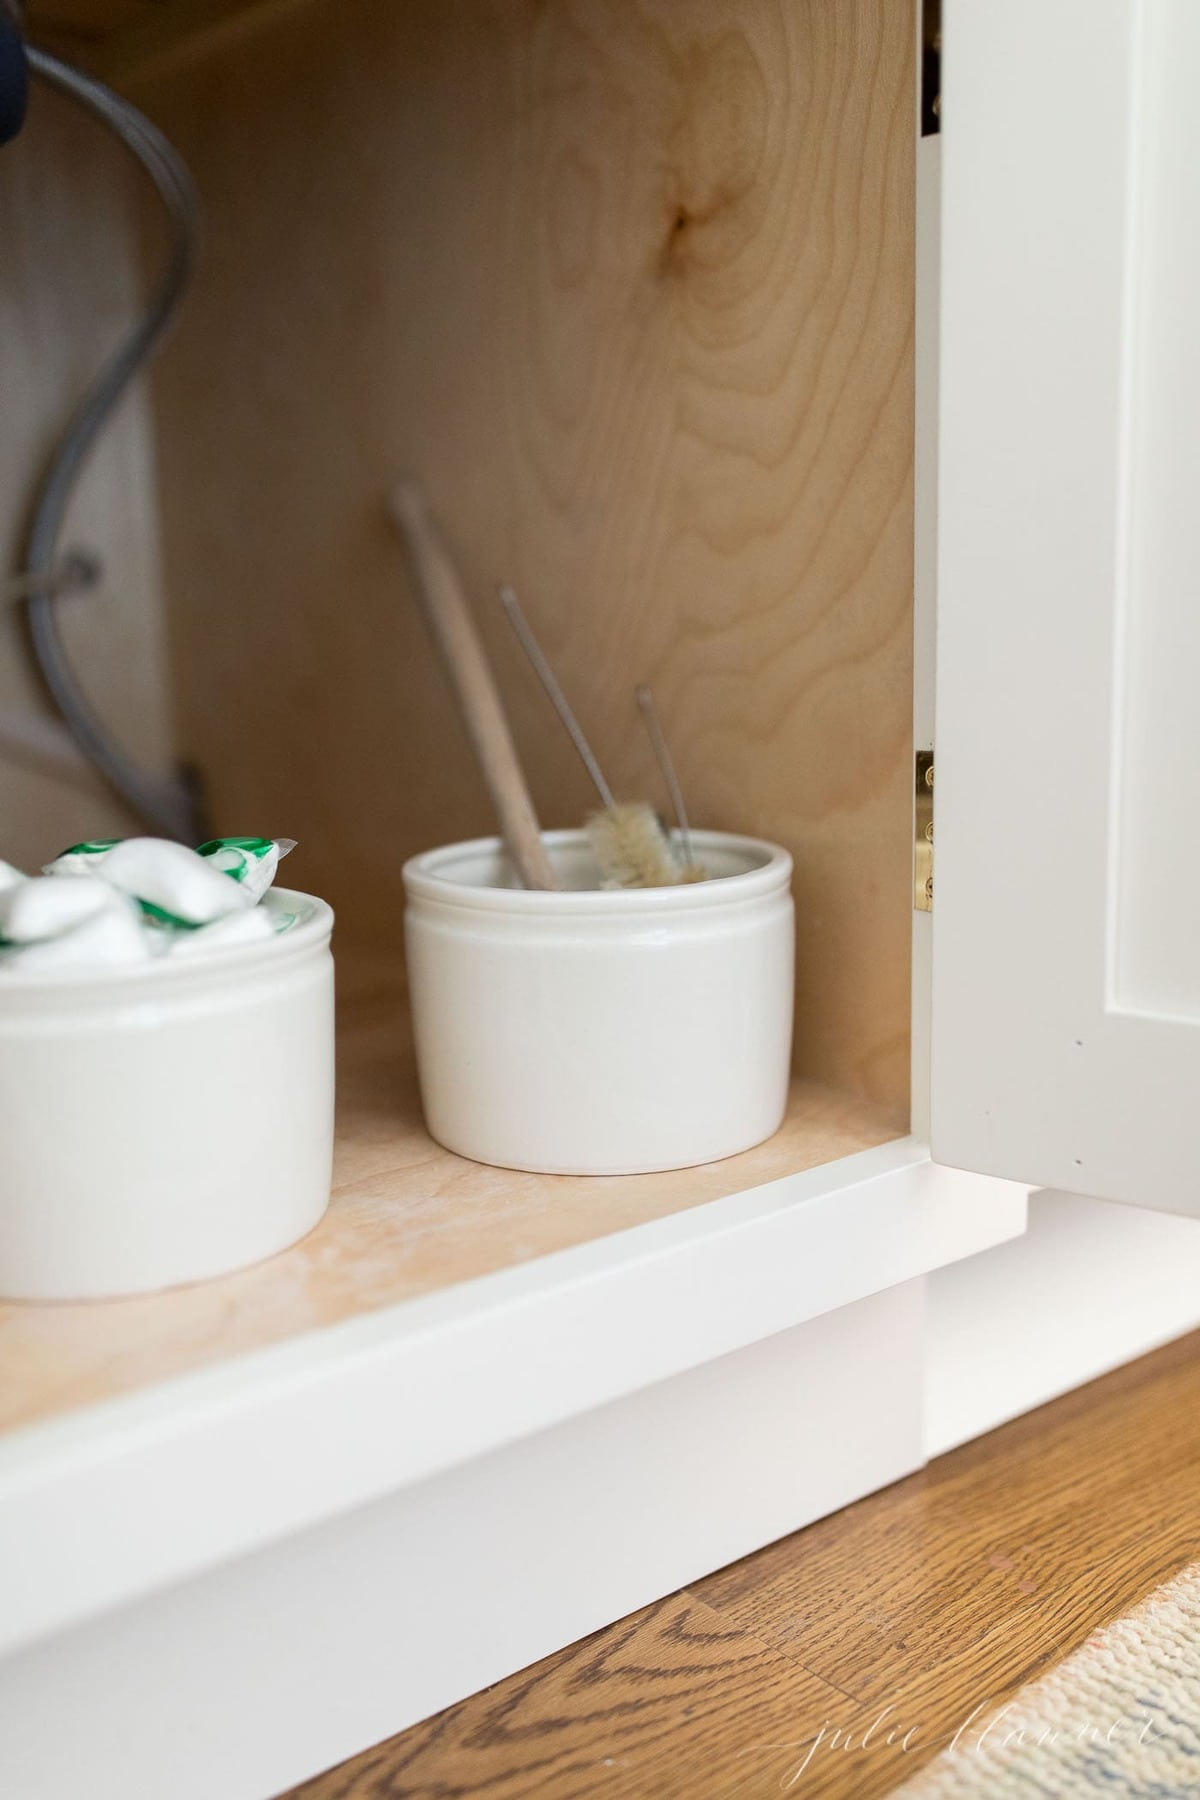 Looking into the cabinet under a kitchen sink, under sink storage ideas like crocks full of cleaning supplies.